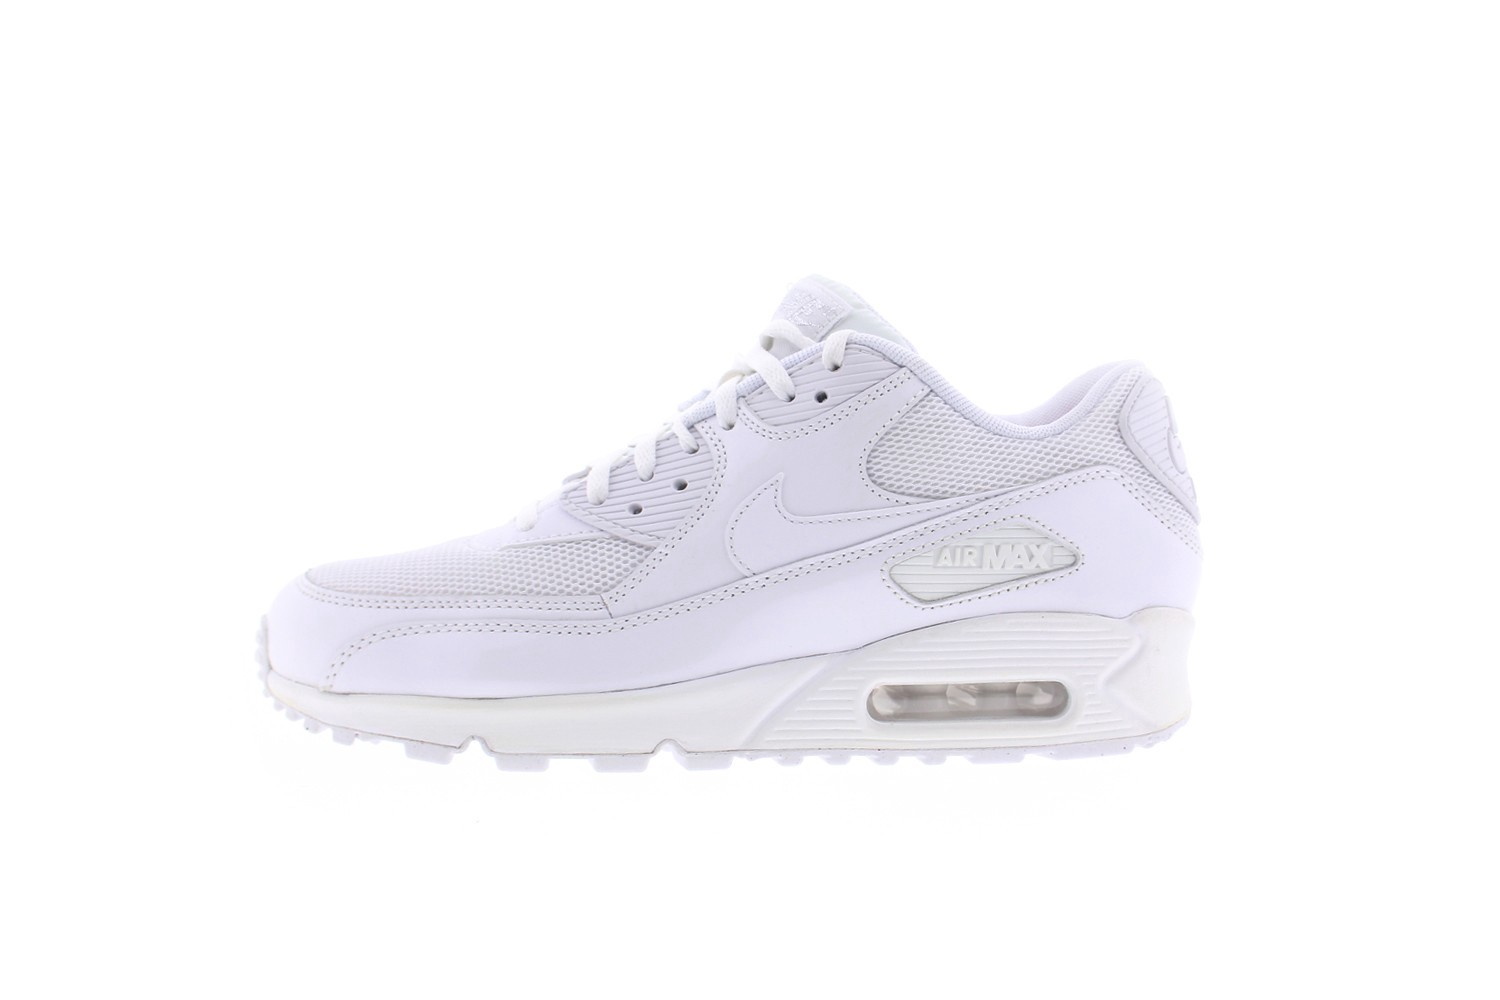 best service 9c651 227de Air Max 90 blancas, a la venta en Foot on Mars.